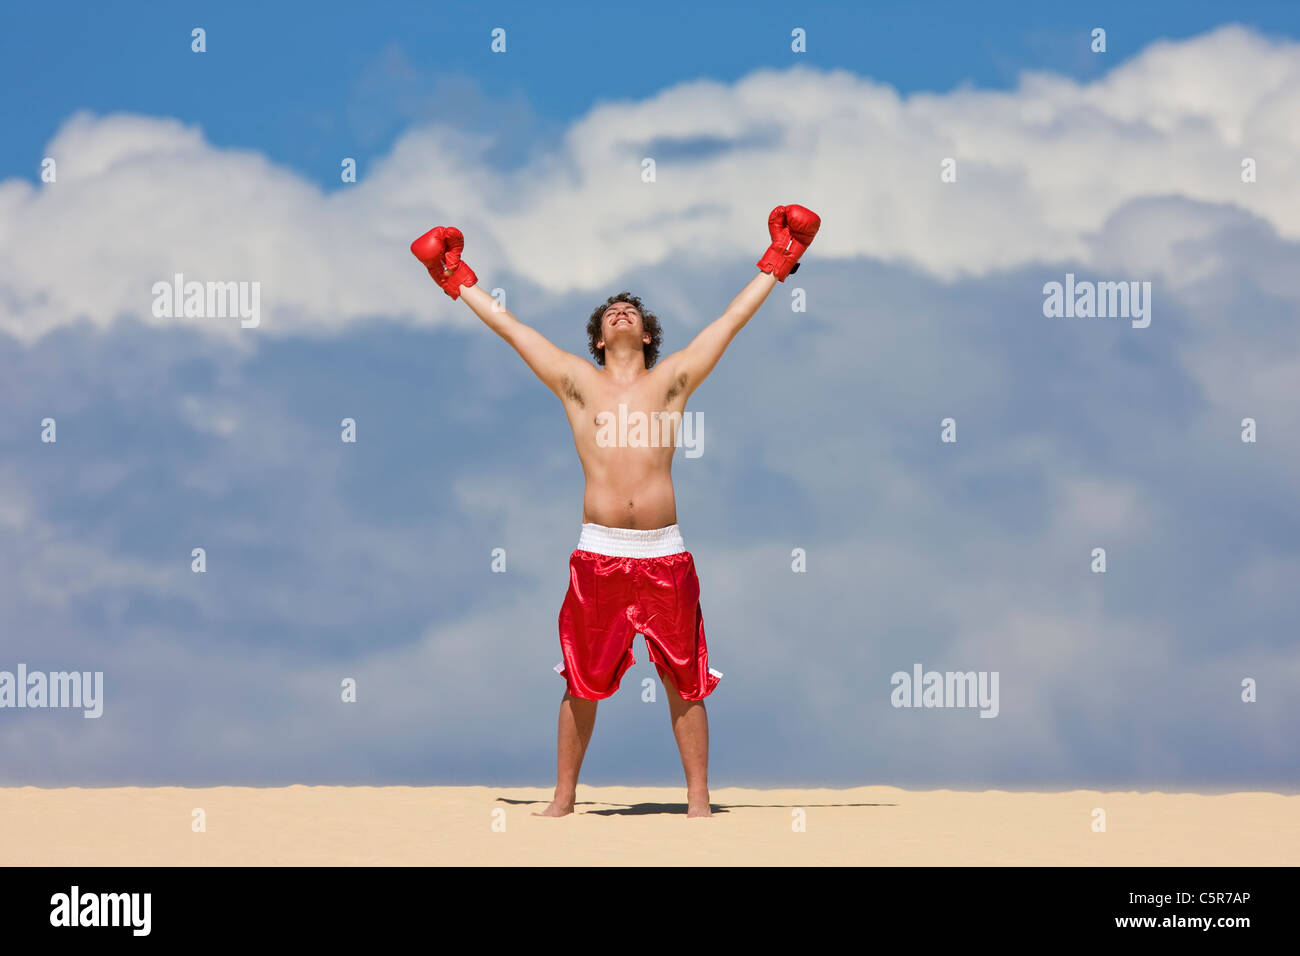 A boxer celebrating on top of the World. - Stock Image